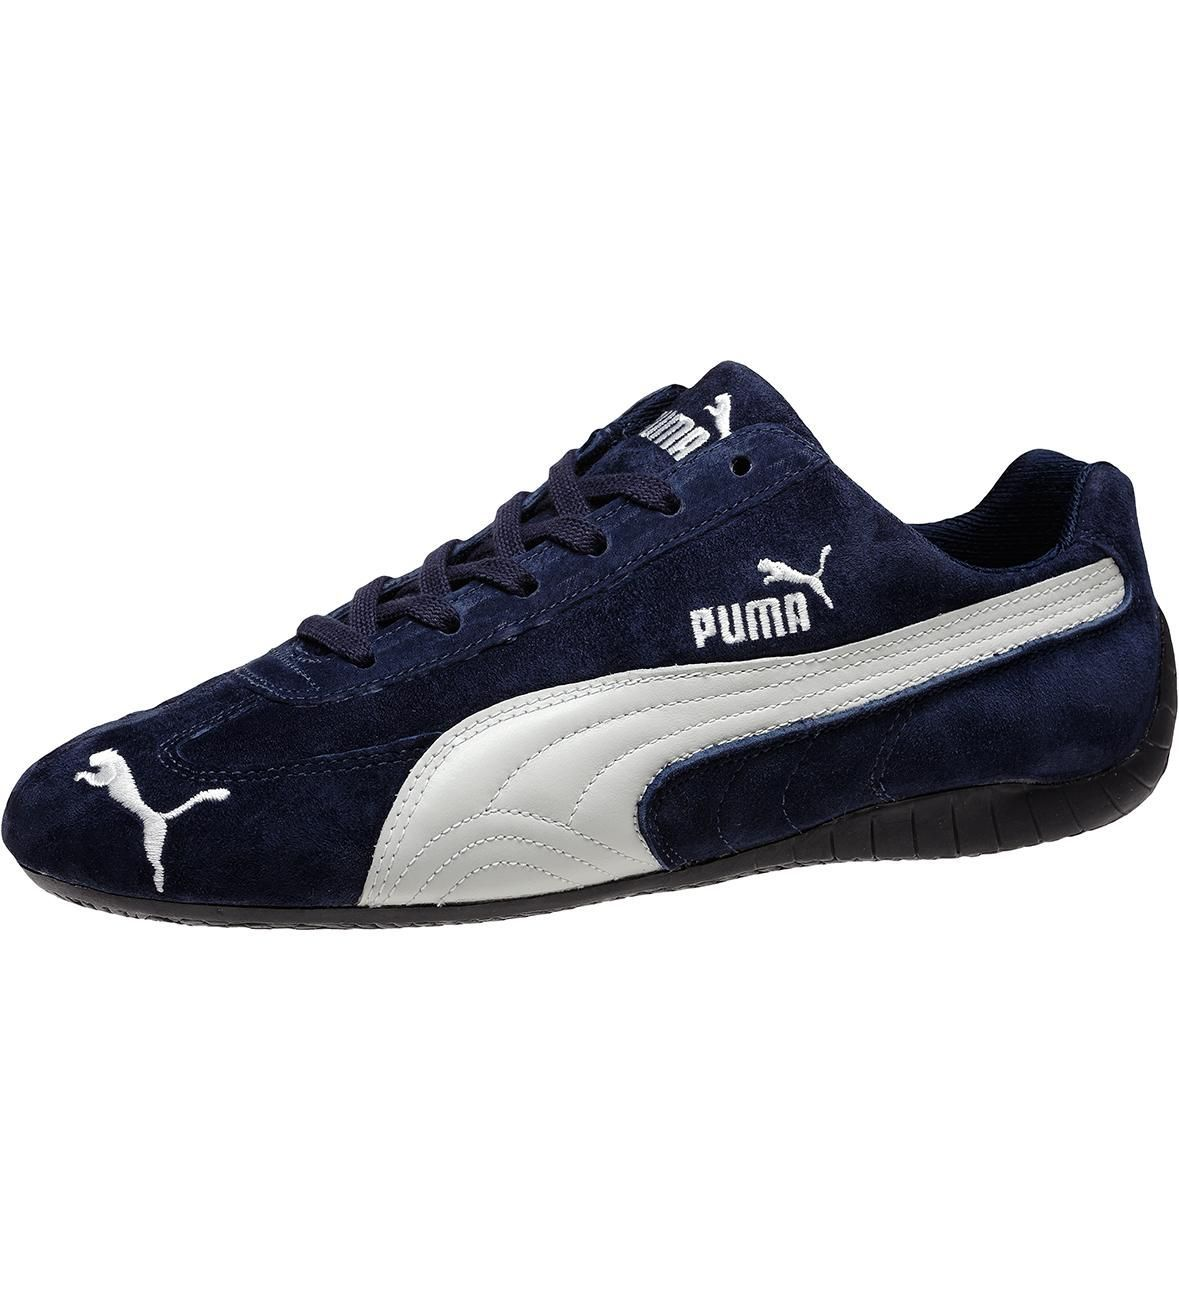 puma shoes pictures | Out with the old and in with the new